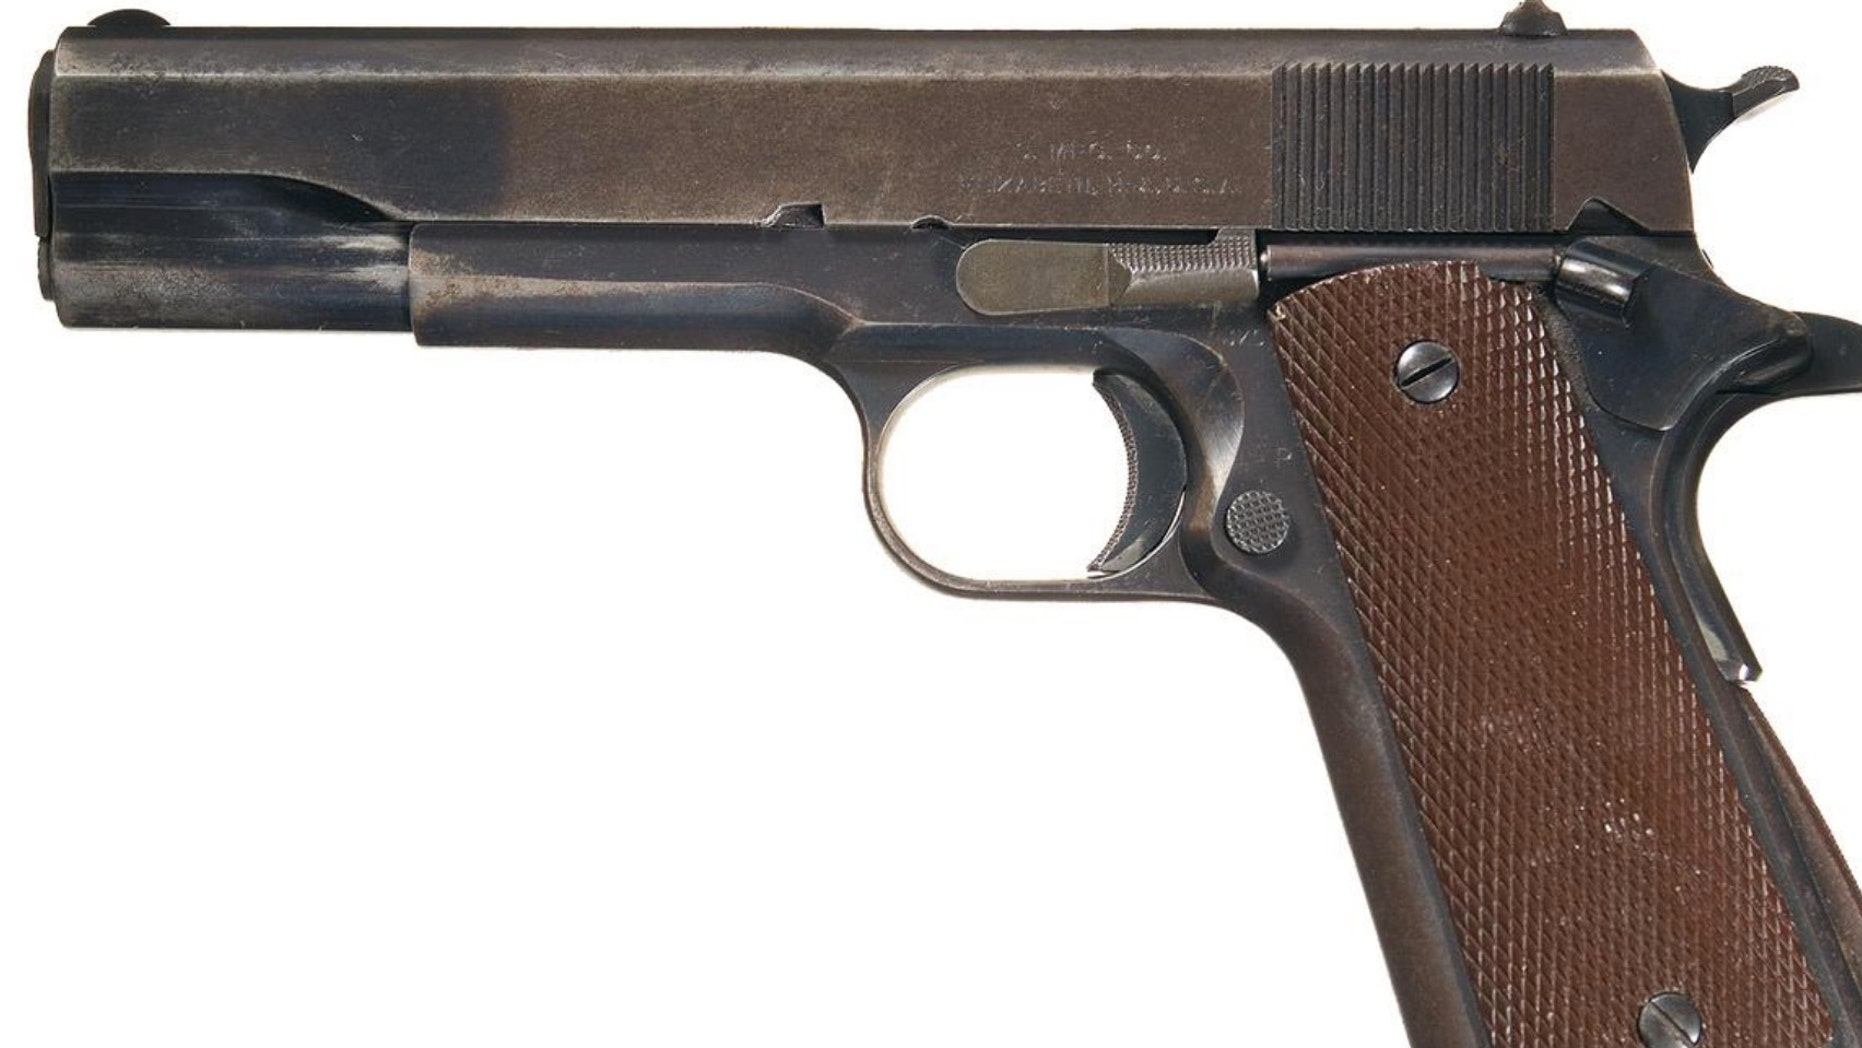 How to get your hands on a historic M1911 pistol from the US Army